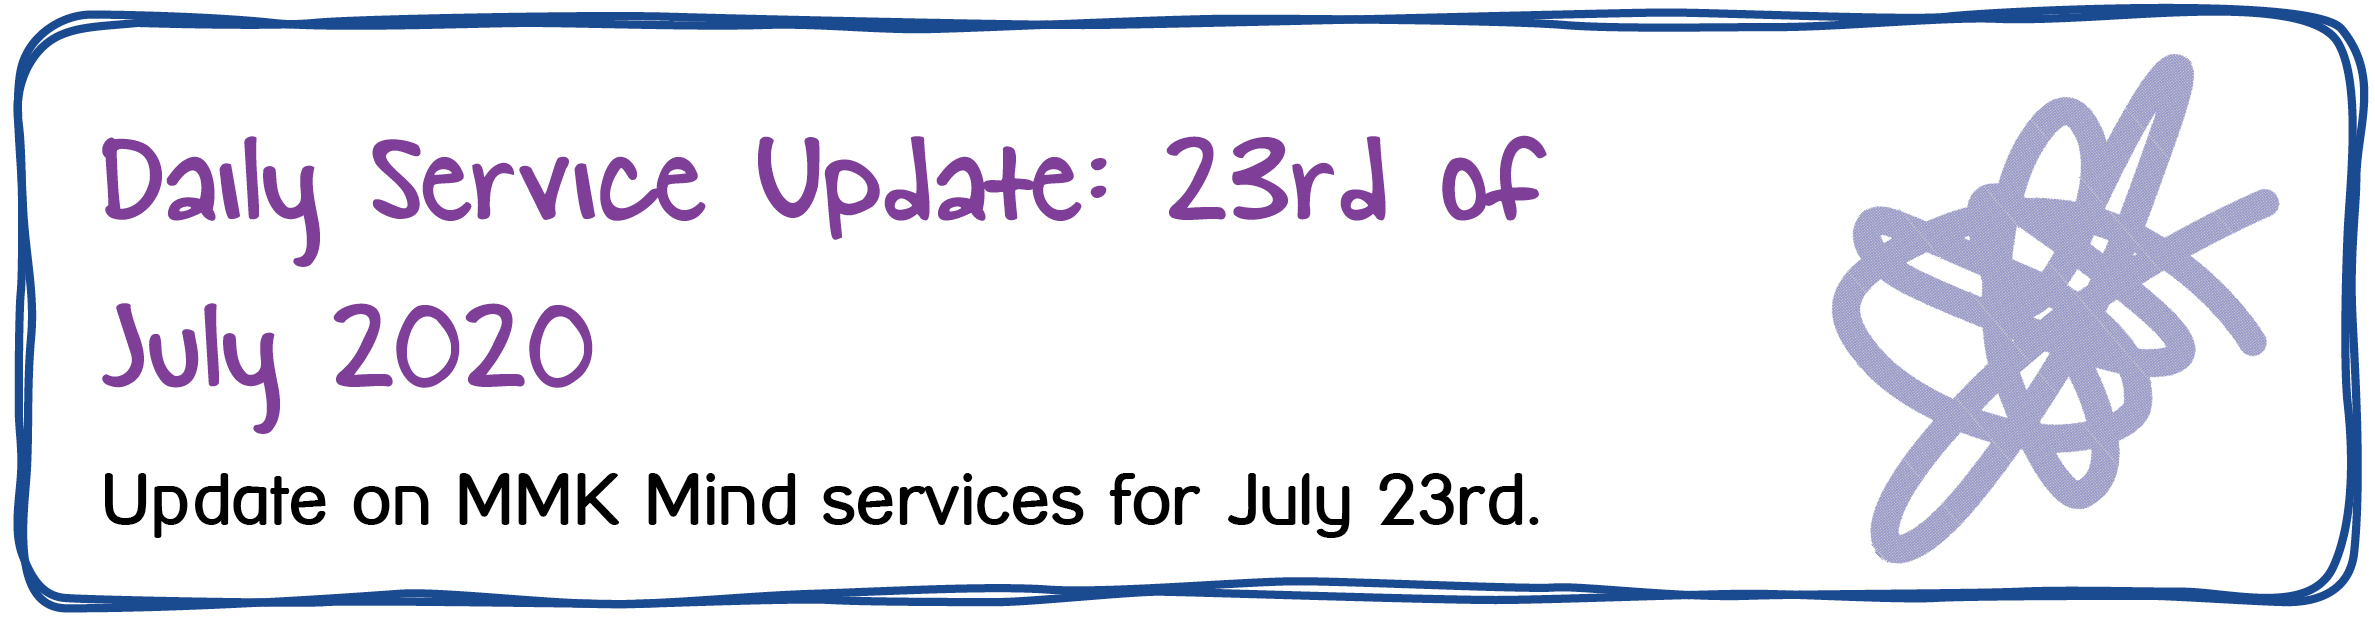 Daily Service Update: 23rd of July 2020. Update on MMK Mind services for July 23rd.